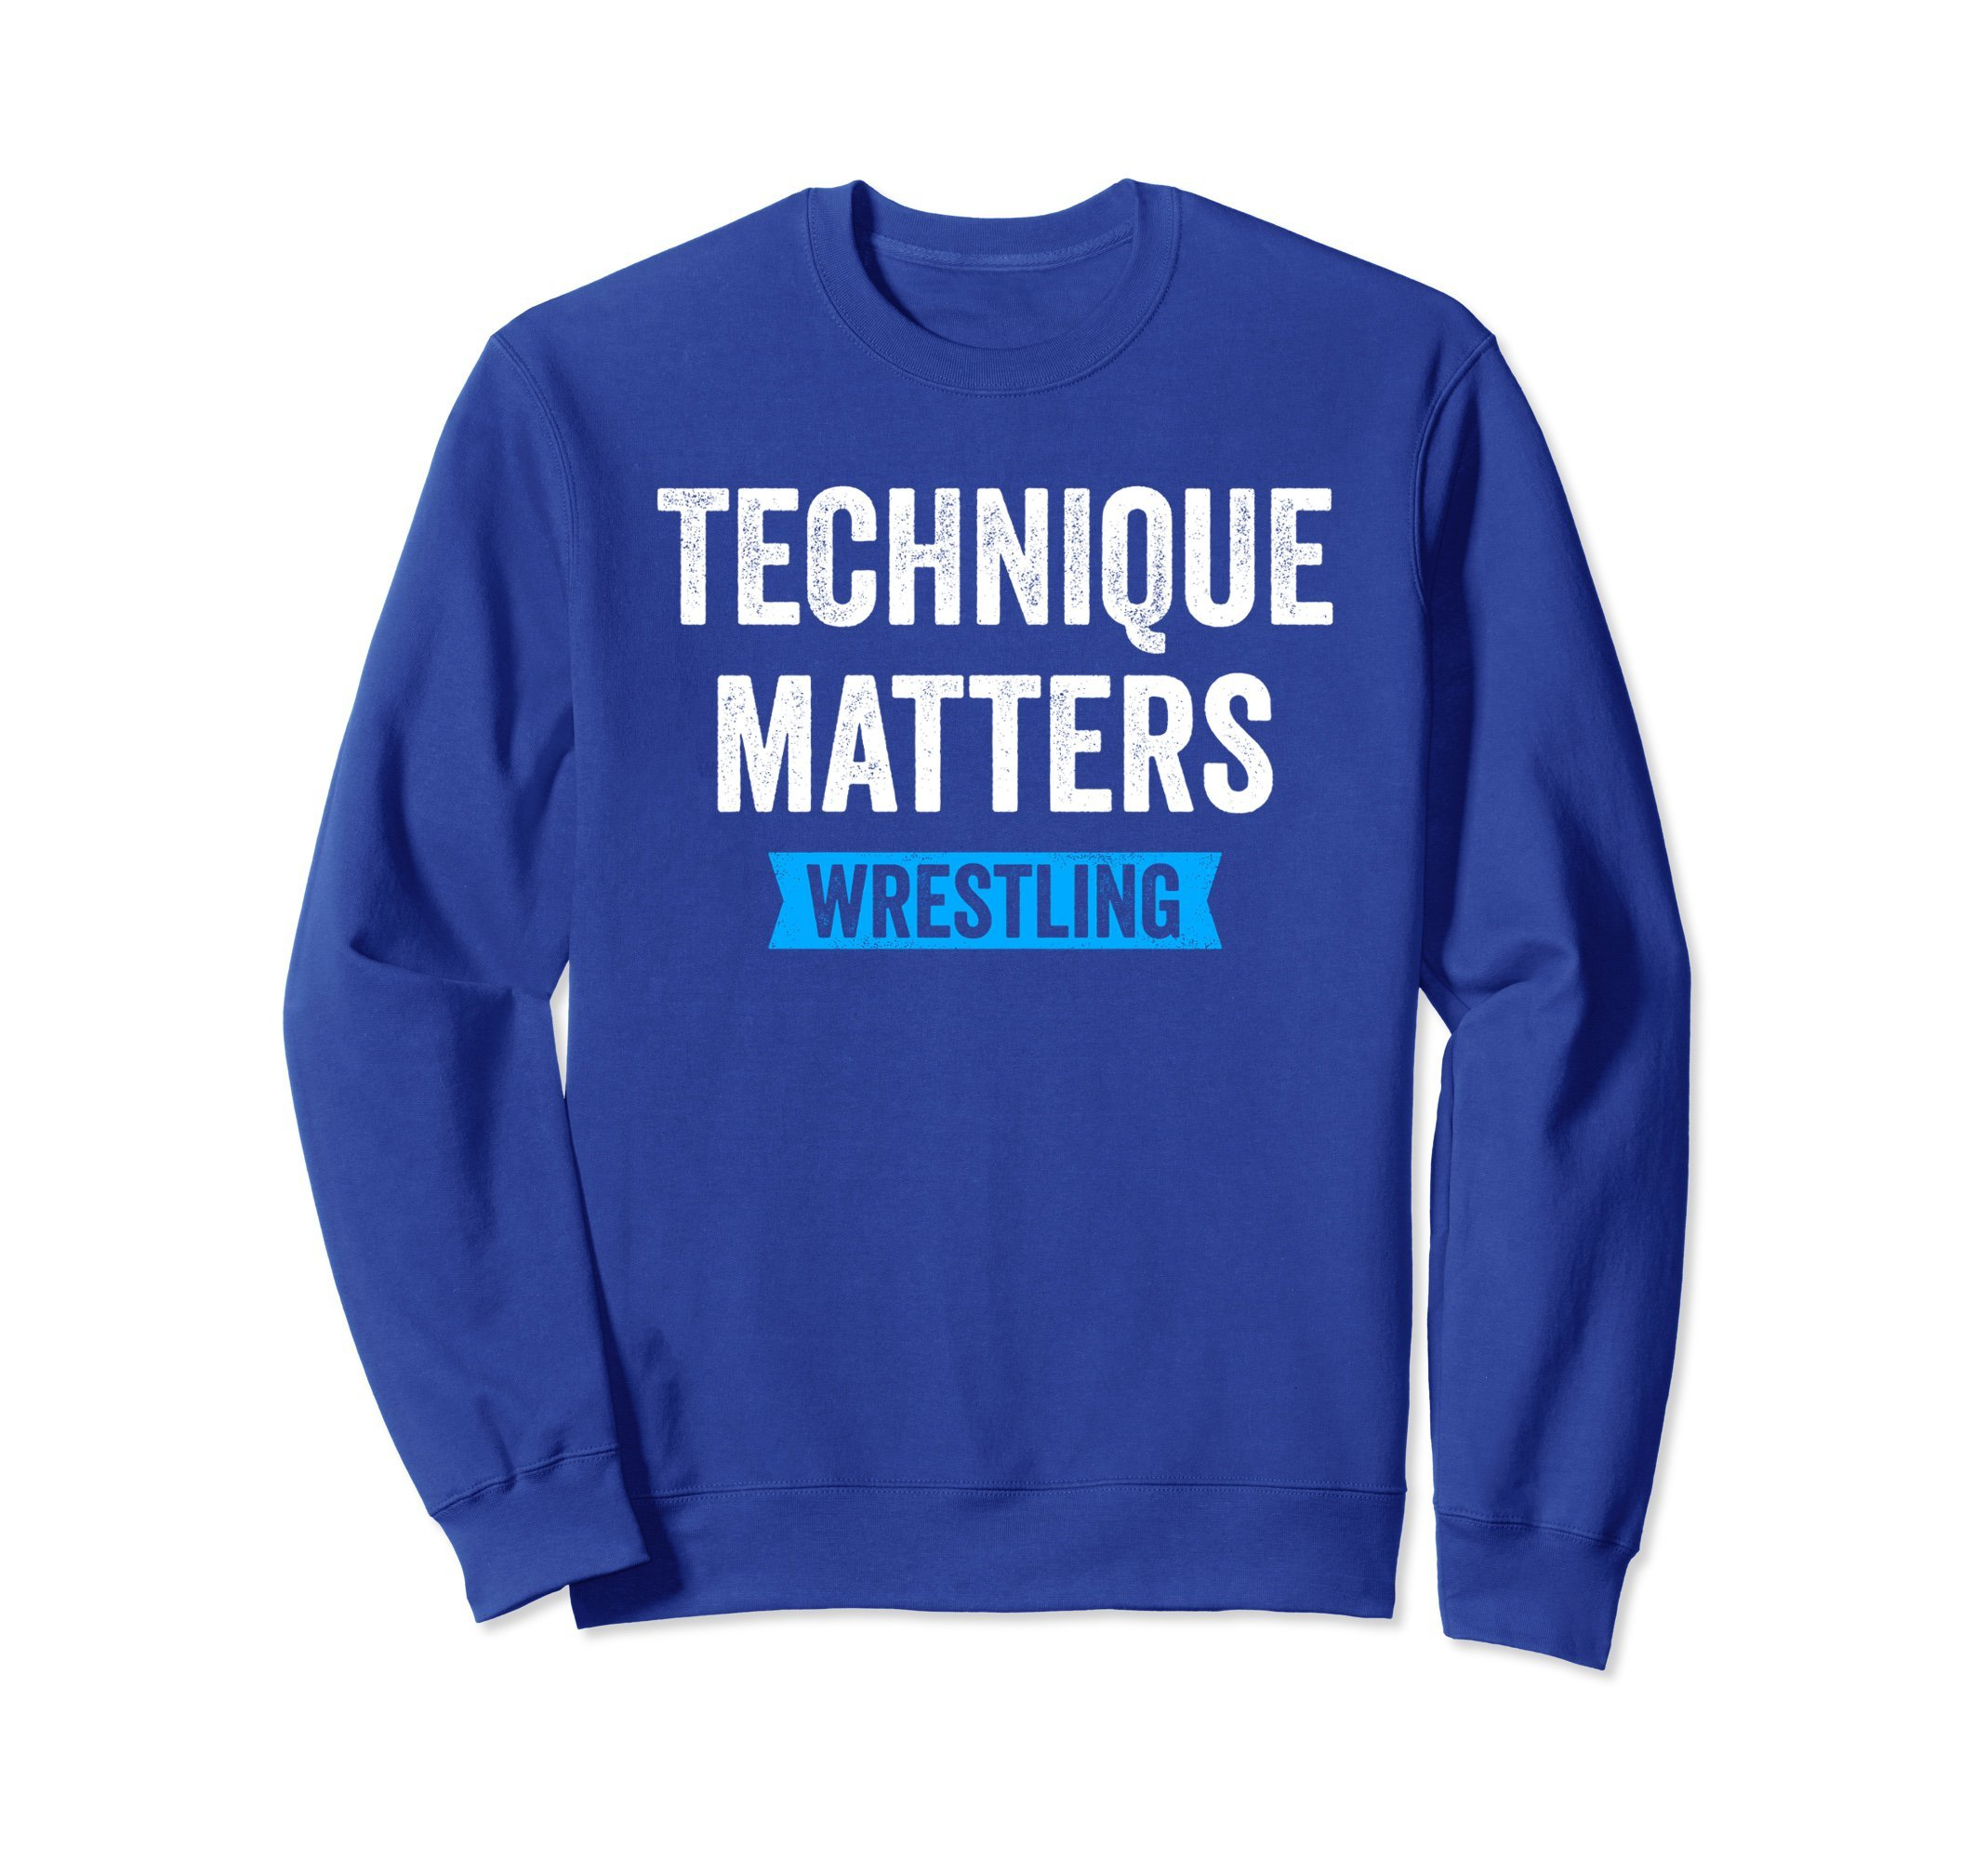 Unisex Technique Matters in Wrestling Sweatshirt for Wrestlers Large Royal Blue